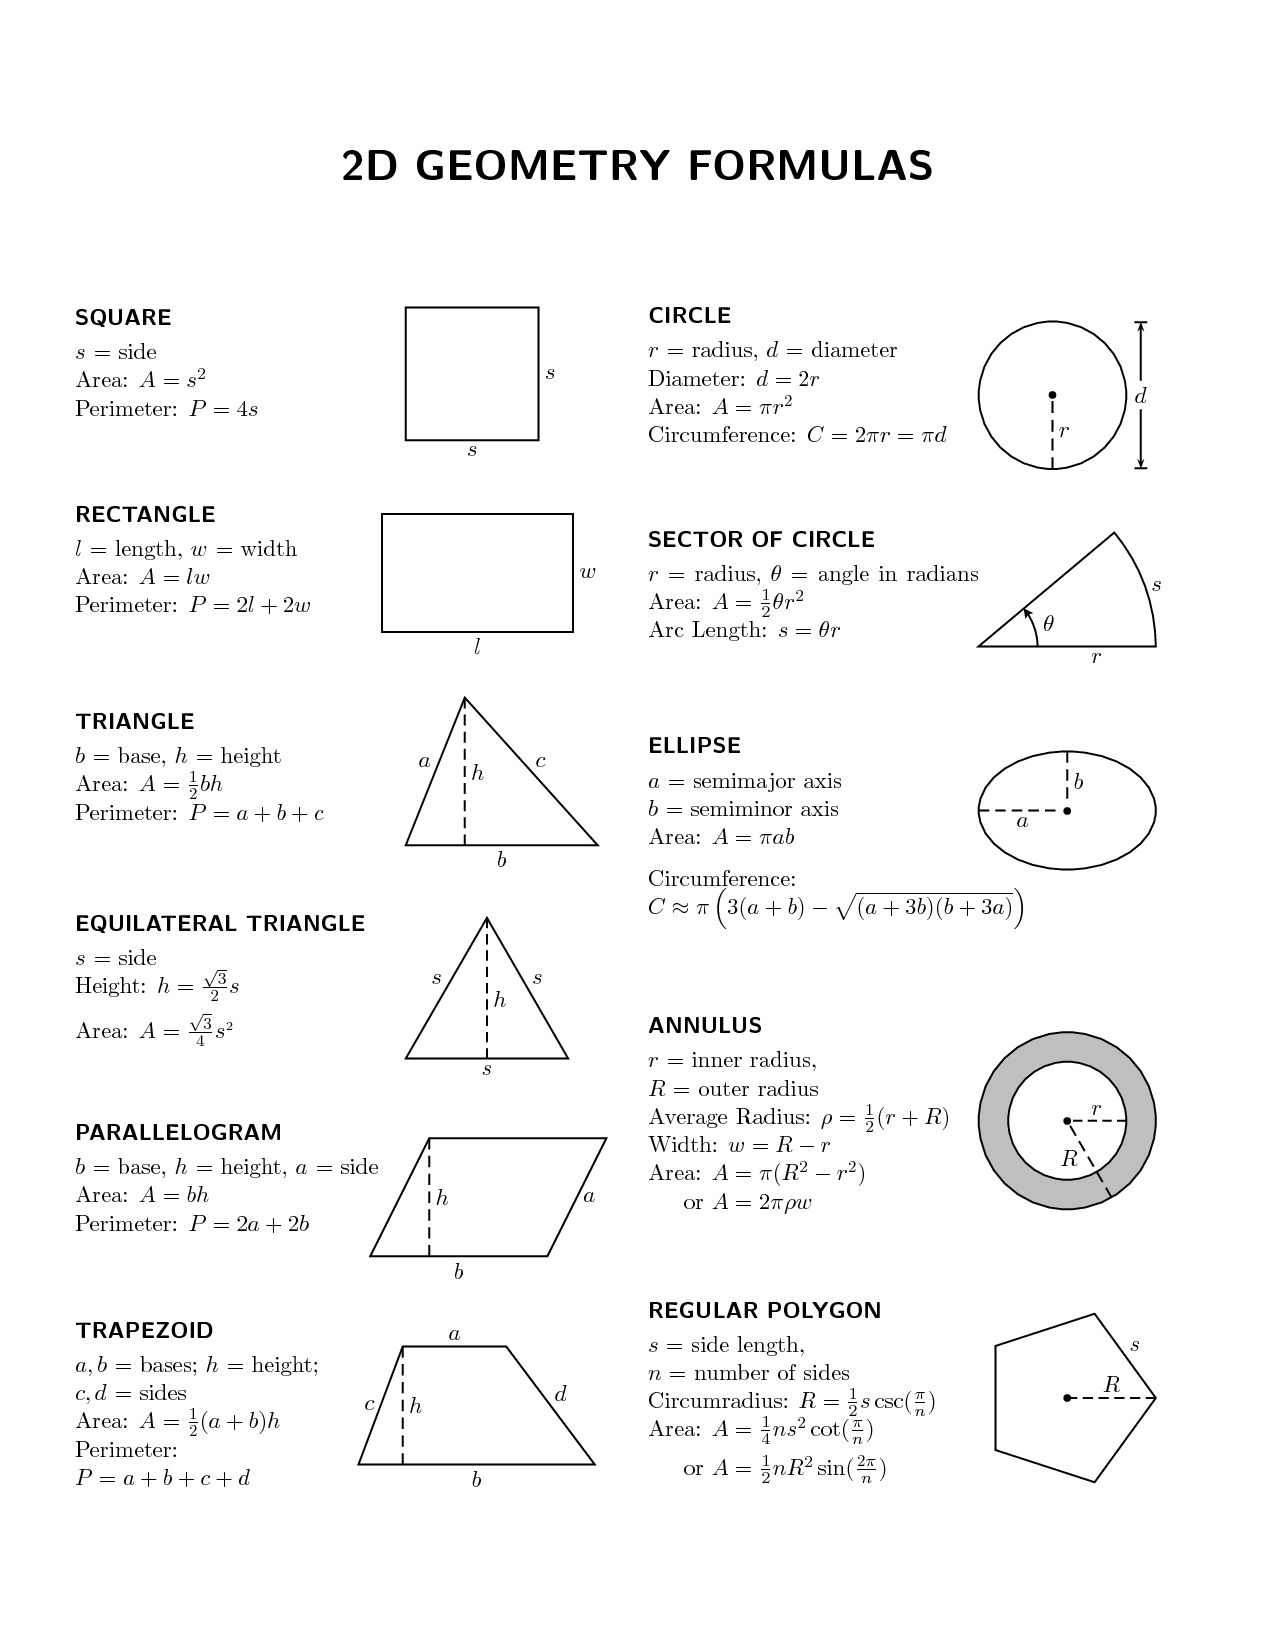 geometry formulas cheat sheet Google Search Math Pinterest